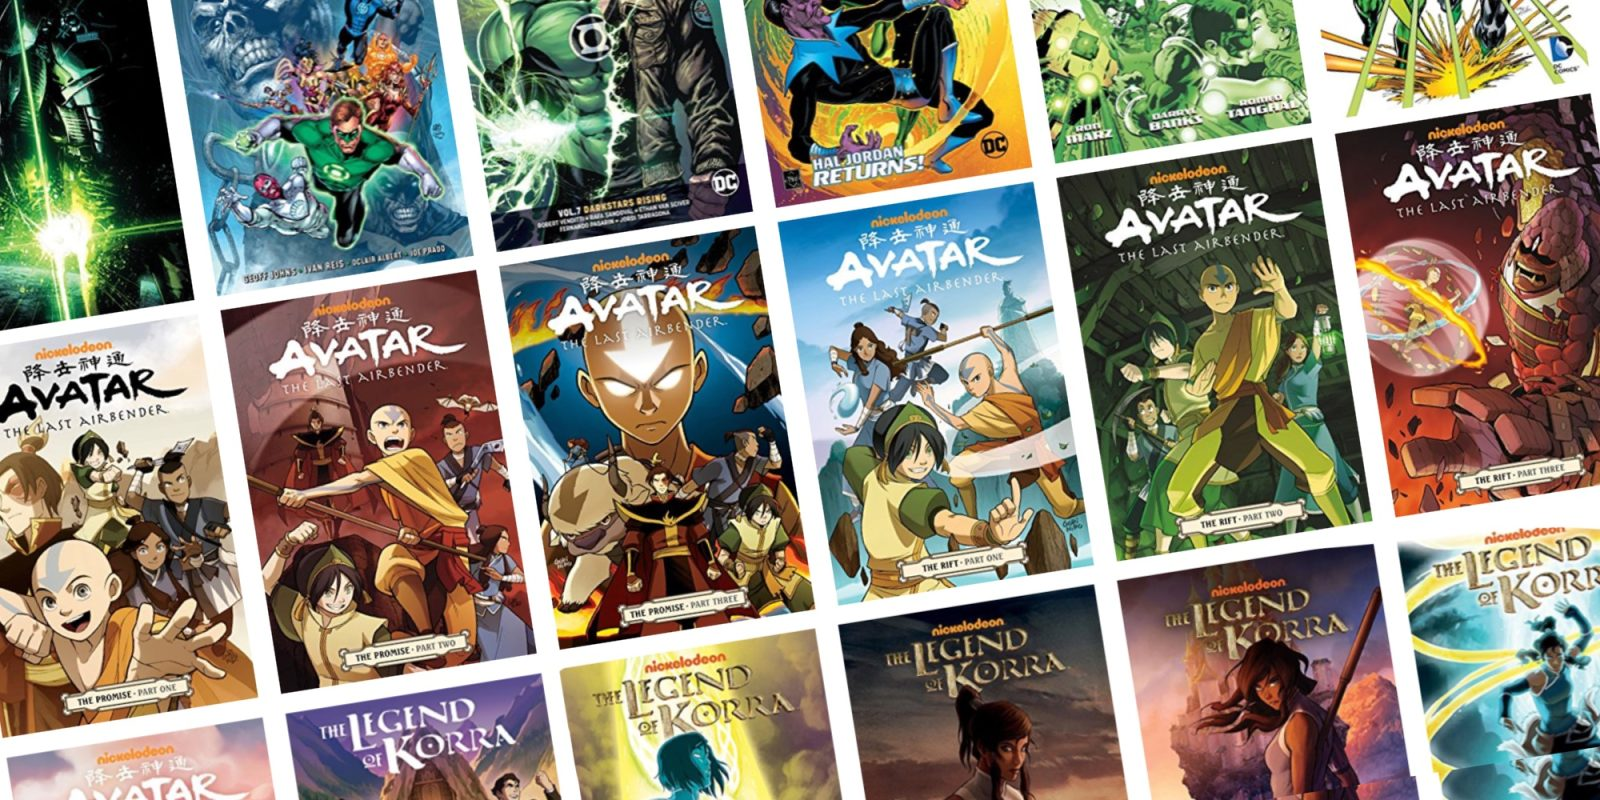 Avatar: The Last Airbender deals have comics from $3.50, more - 9to5Toys